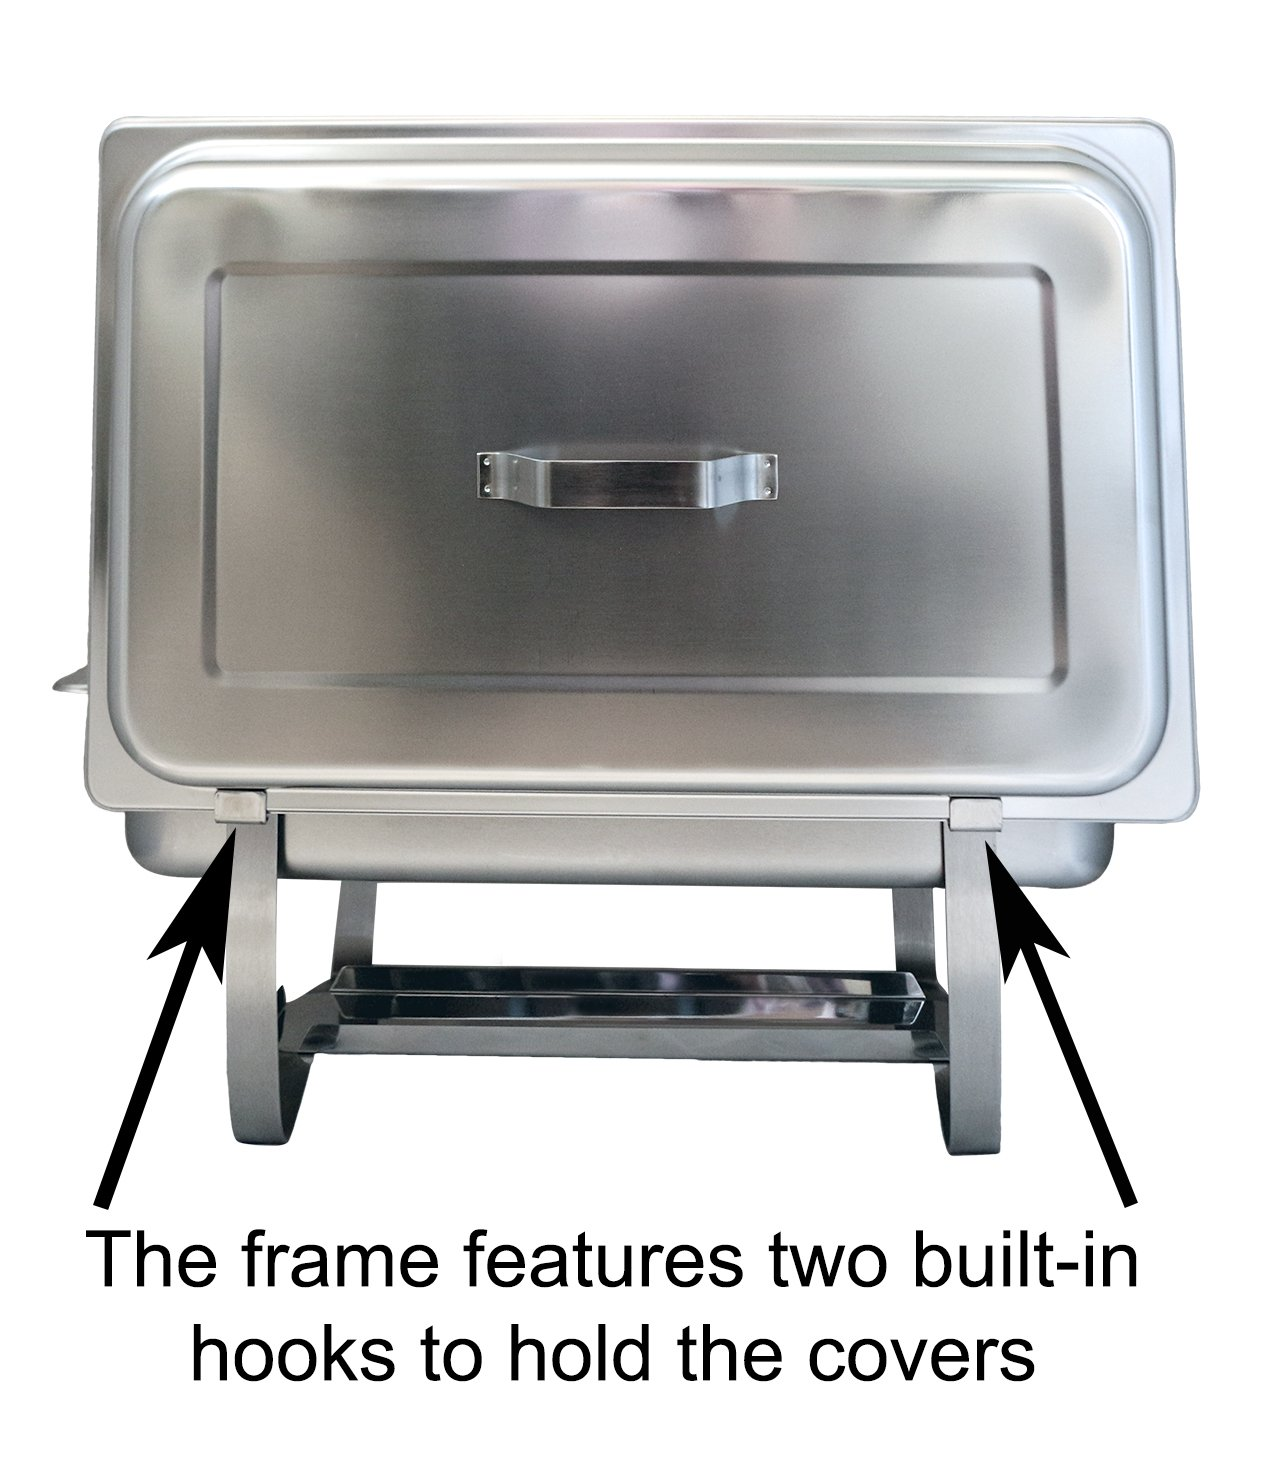 Tiger Chef 8 Quart Full Size Stainless Steel Chafer with Folding Frame and 2 Half Size Chafing Dishes Food Pans and Cool-Touch Plastic Handle on Top by Tiger Chef (Image #3)